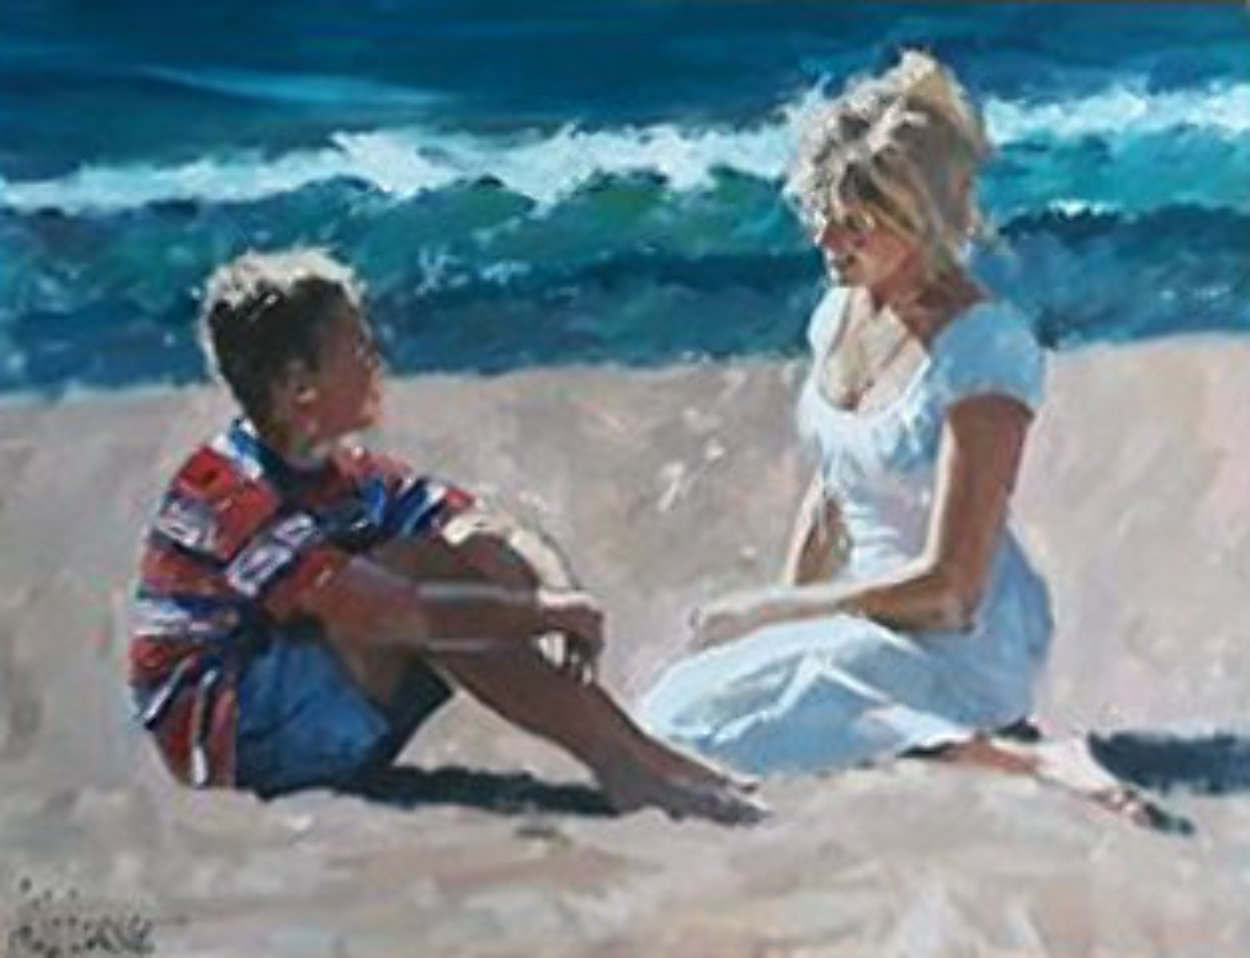 Summer Whispers 30x40 Super Huge Original Painting by Aldo Luongo